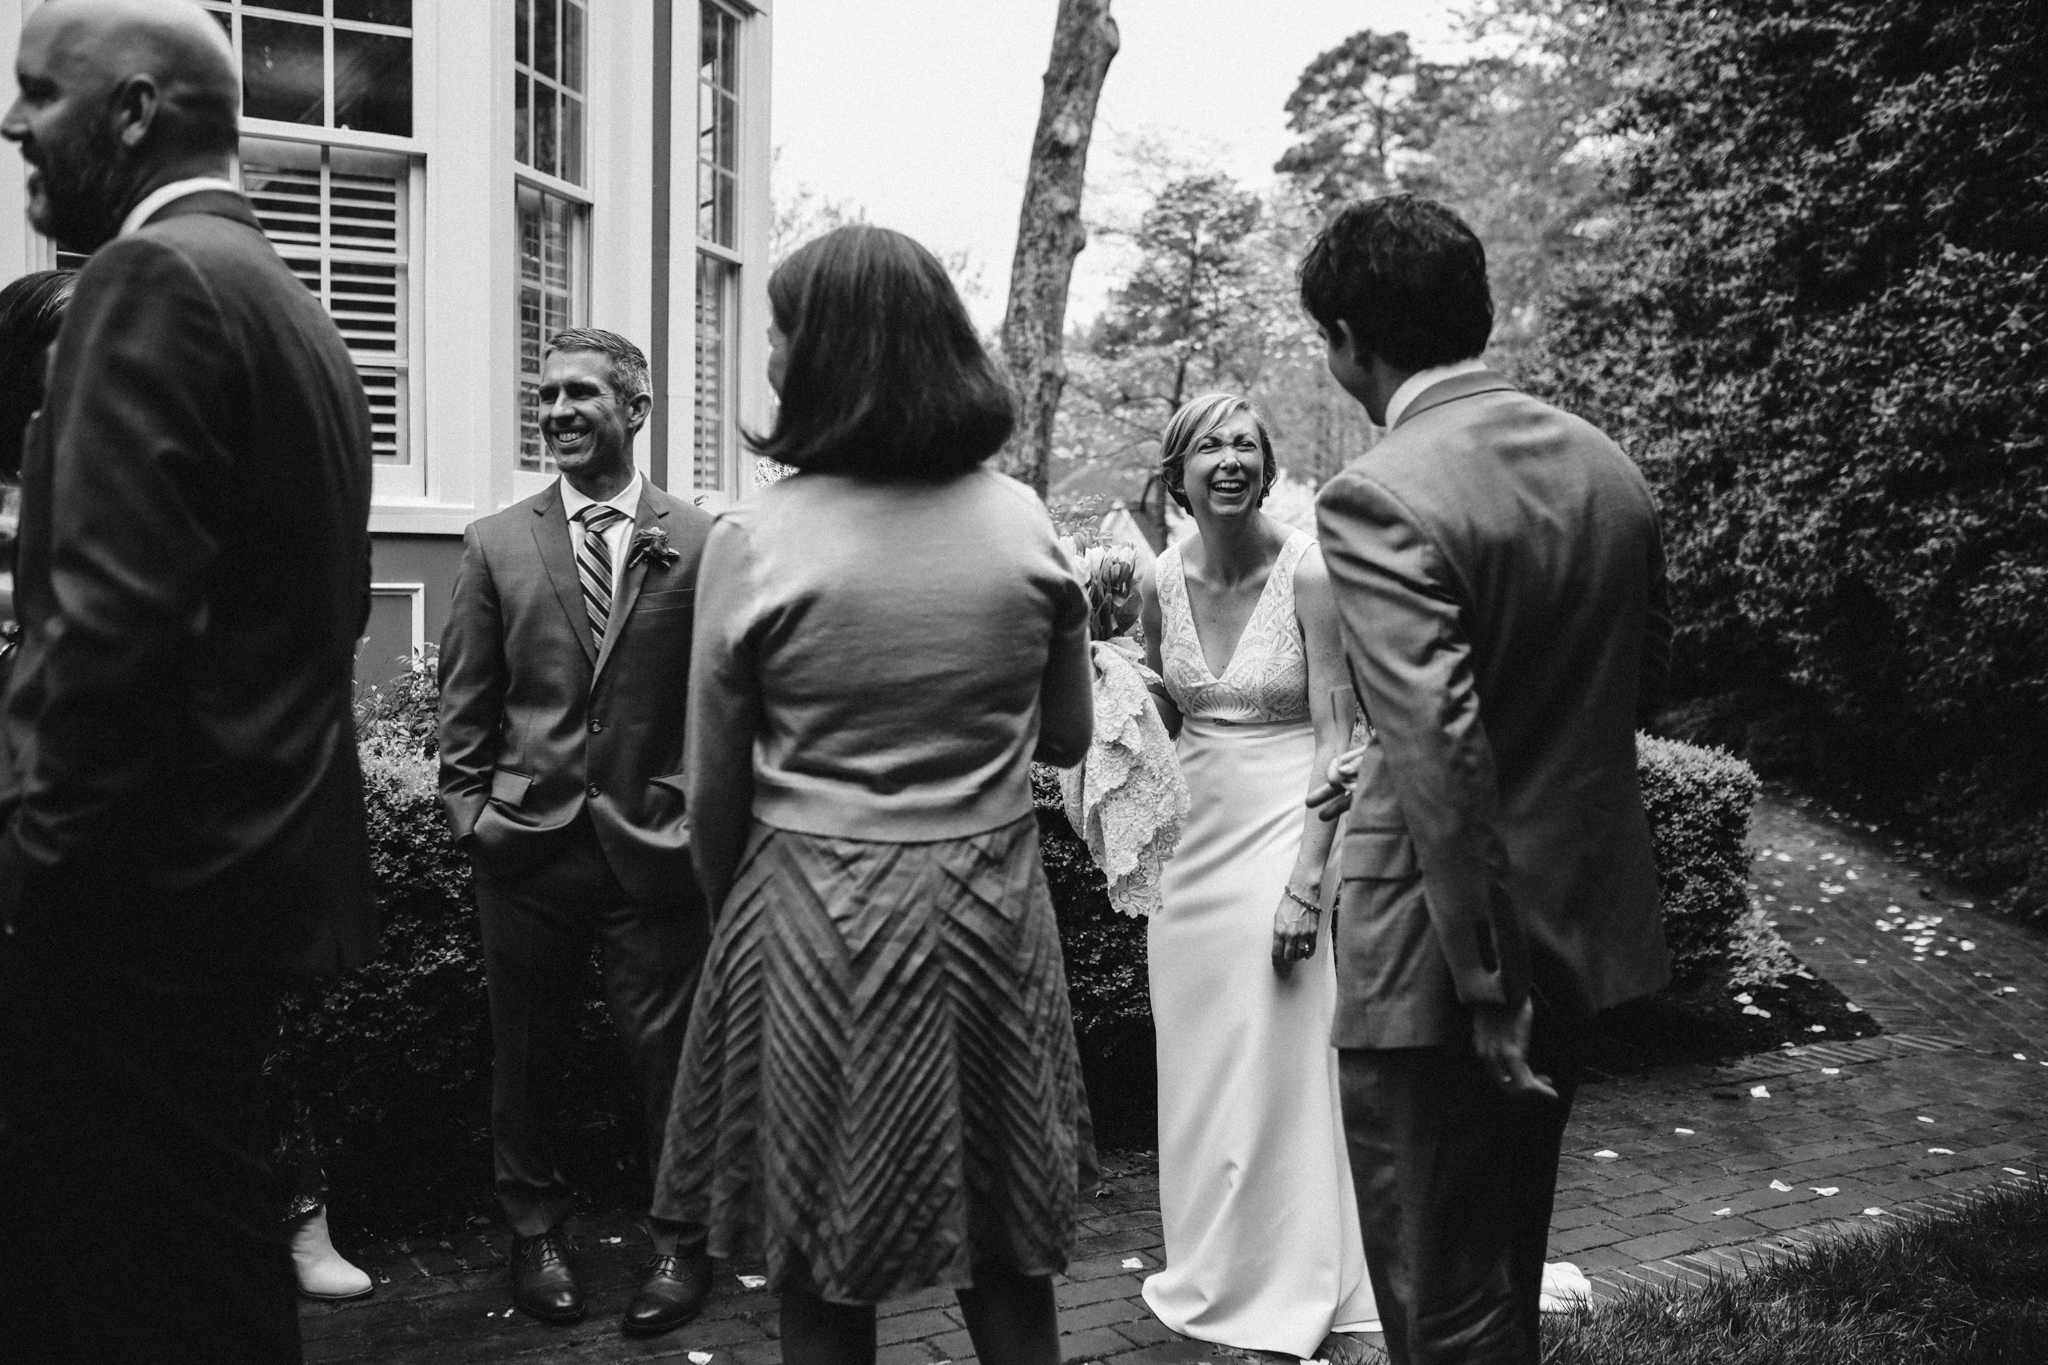 cook_wedding_richmond_virginia_rebecca_burt_photography-69.jpg